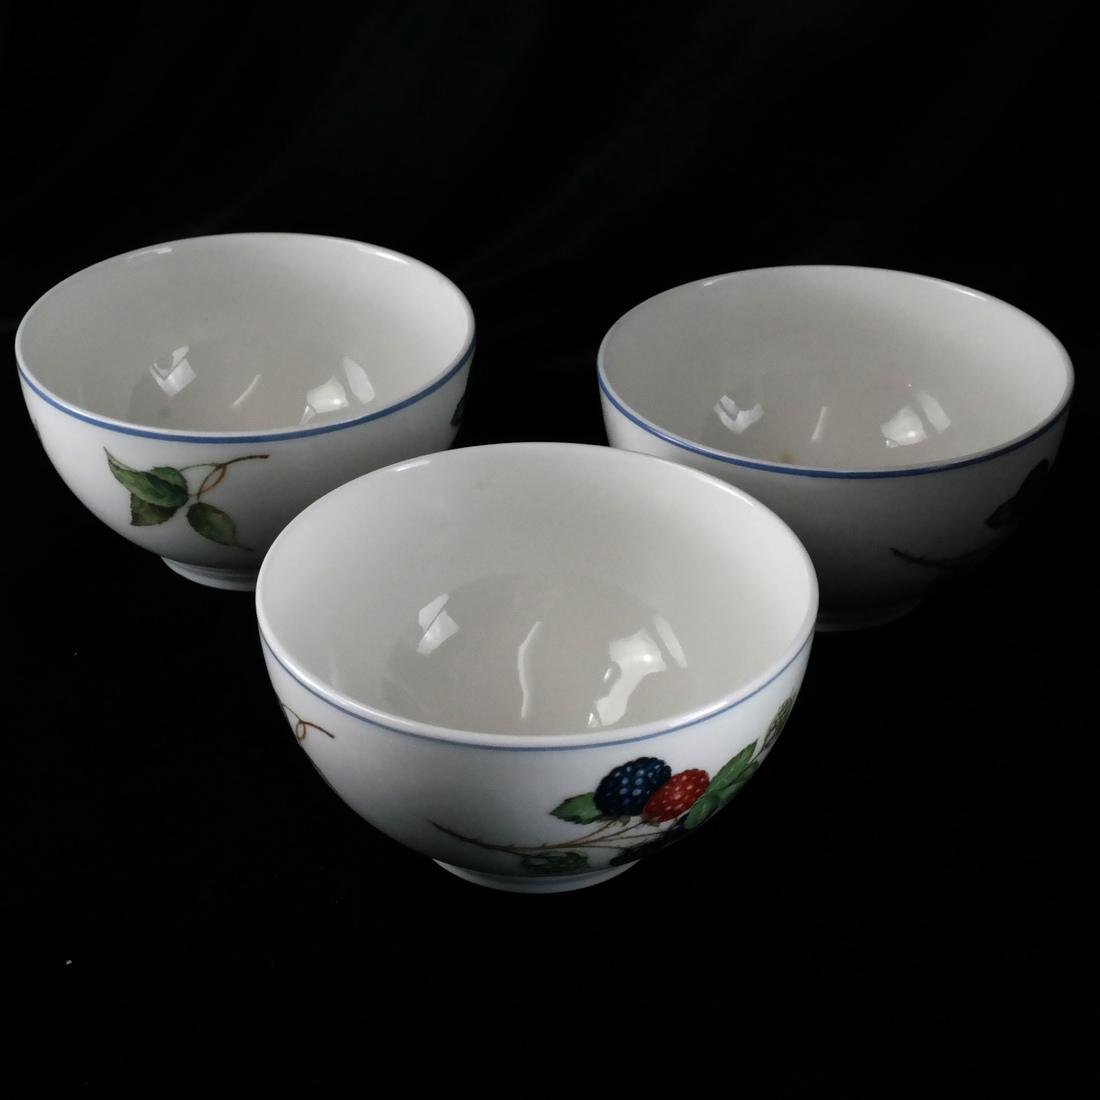 Villery and Boch, Germany: Partial Dinnerware - 2